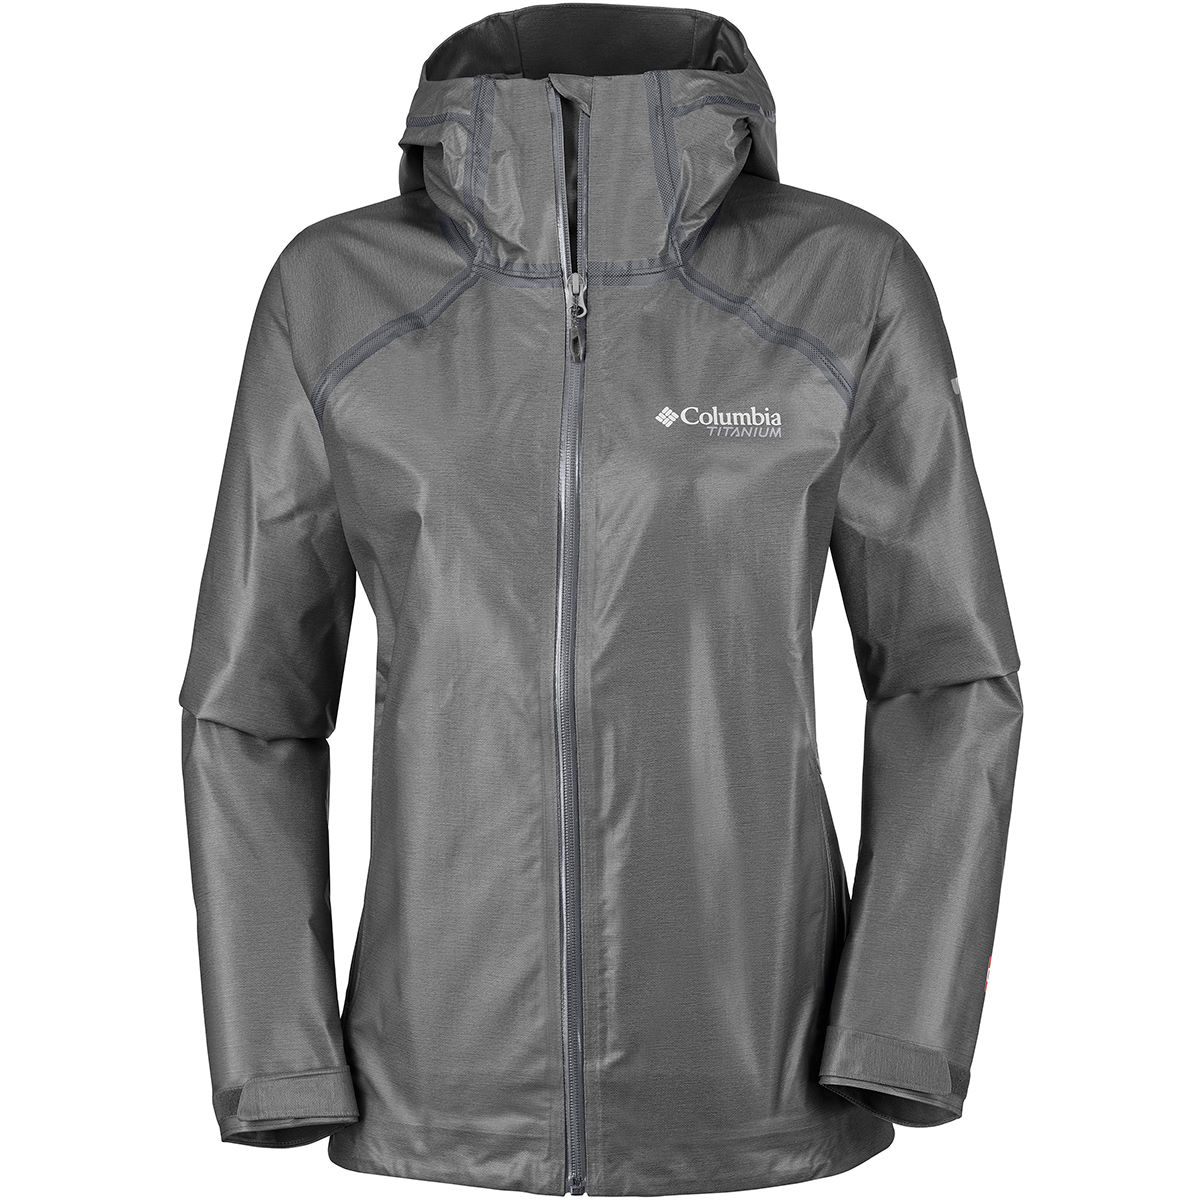 Columbia Columbia womens OutDry Extreme Reign Waterproof Jacket   Jackets